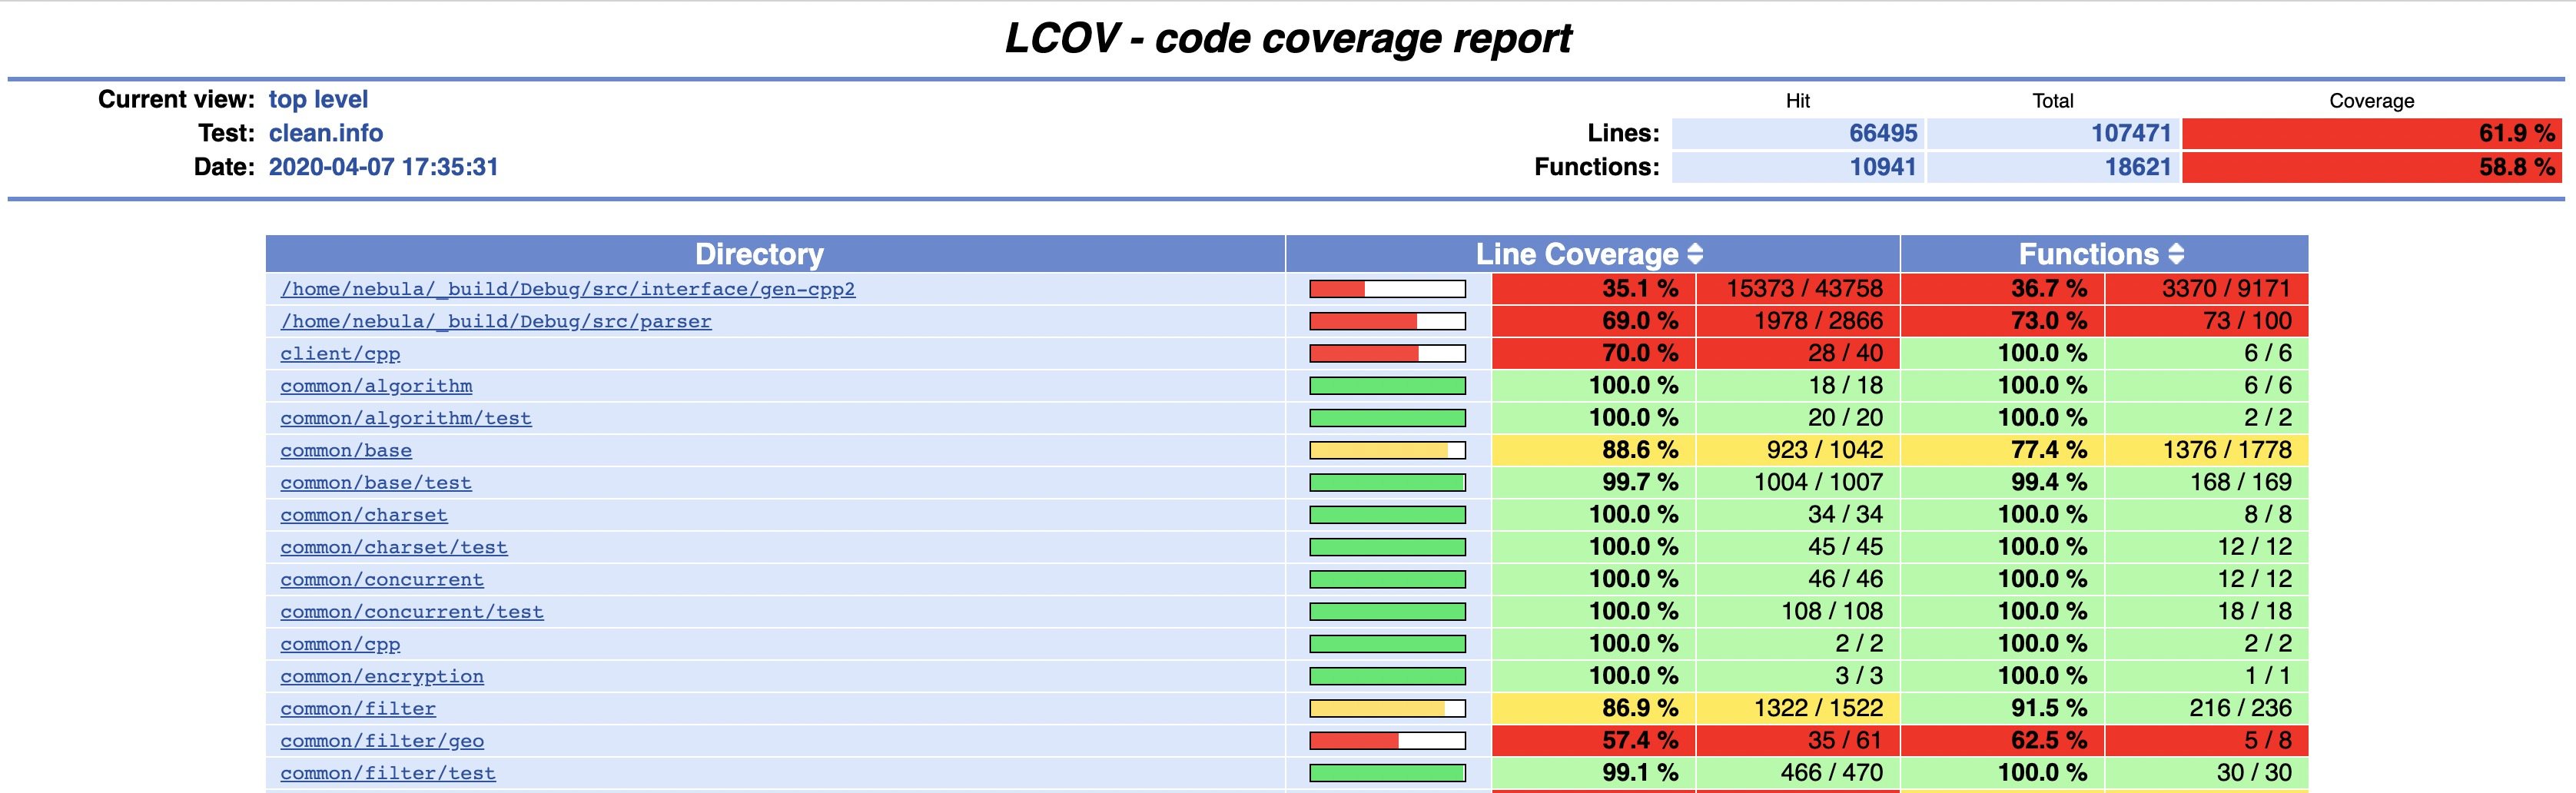 test coverage report sample